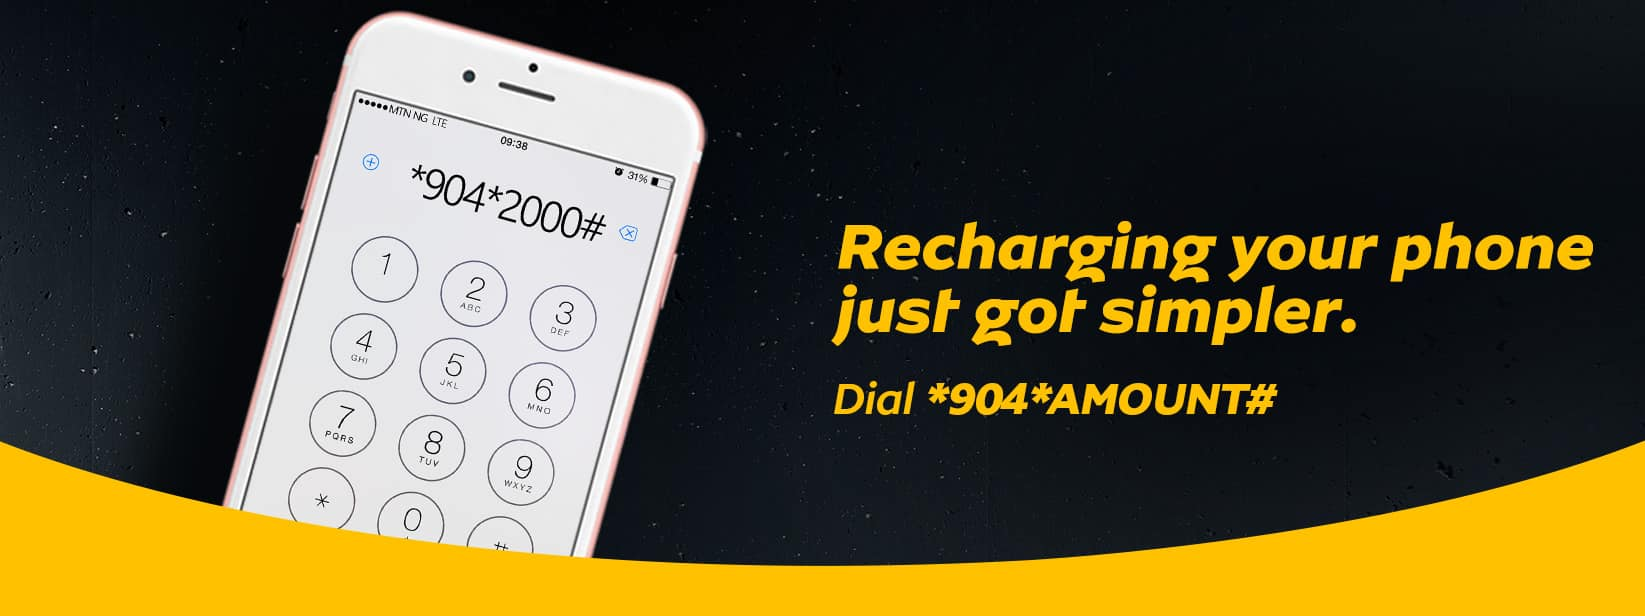 Mtn Mobile Recharge